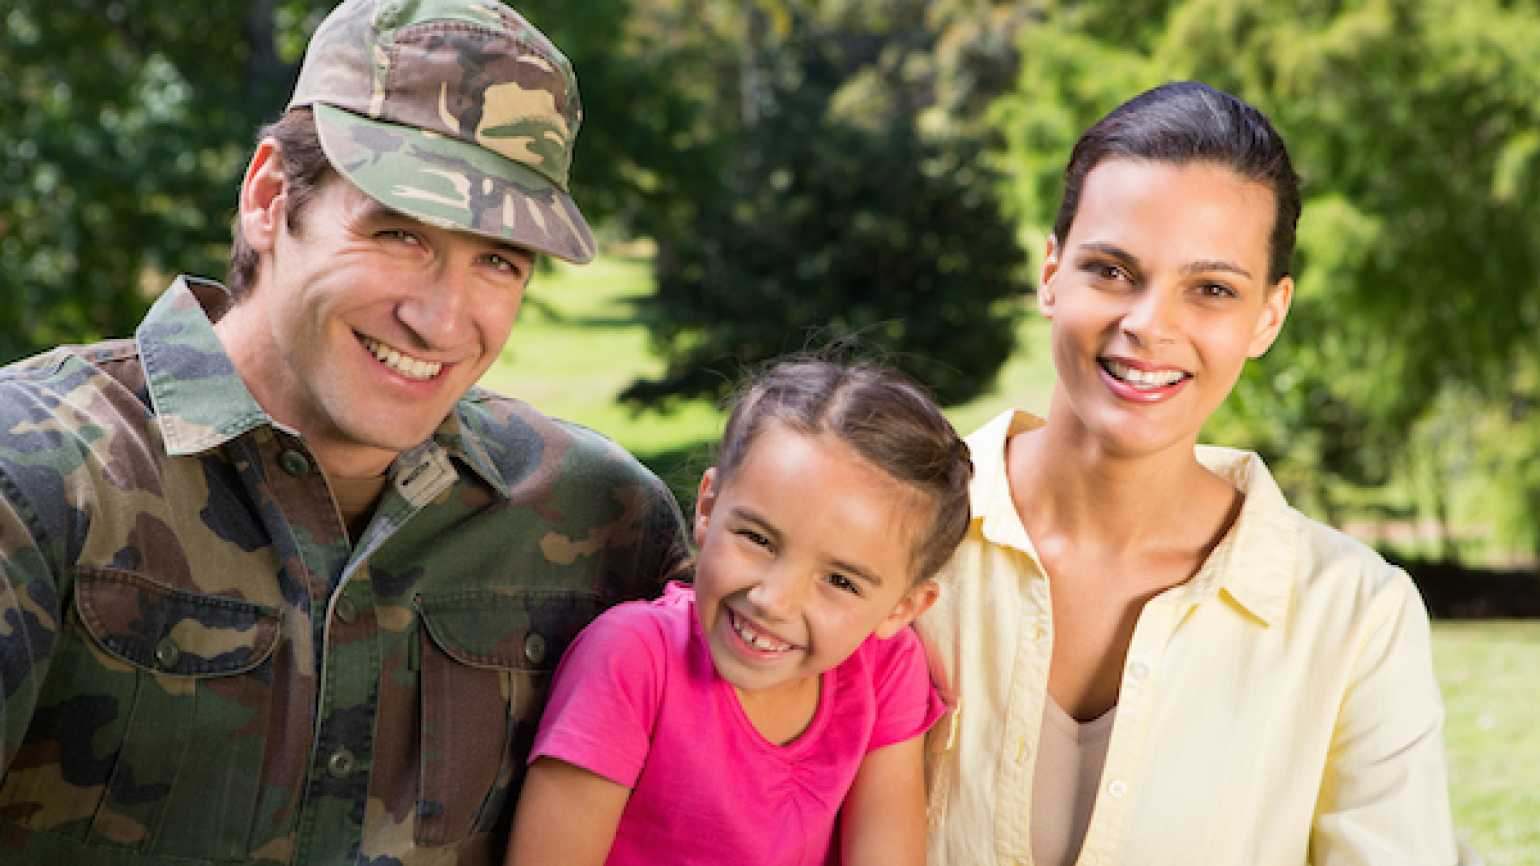 In a military family, challenges require new skill sets.